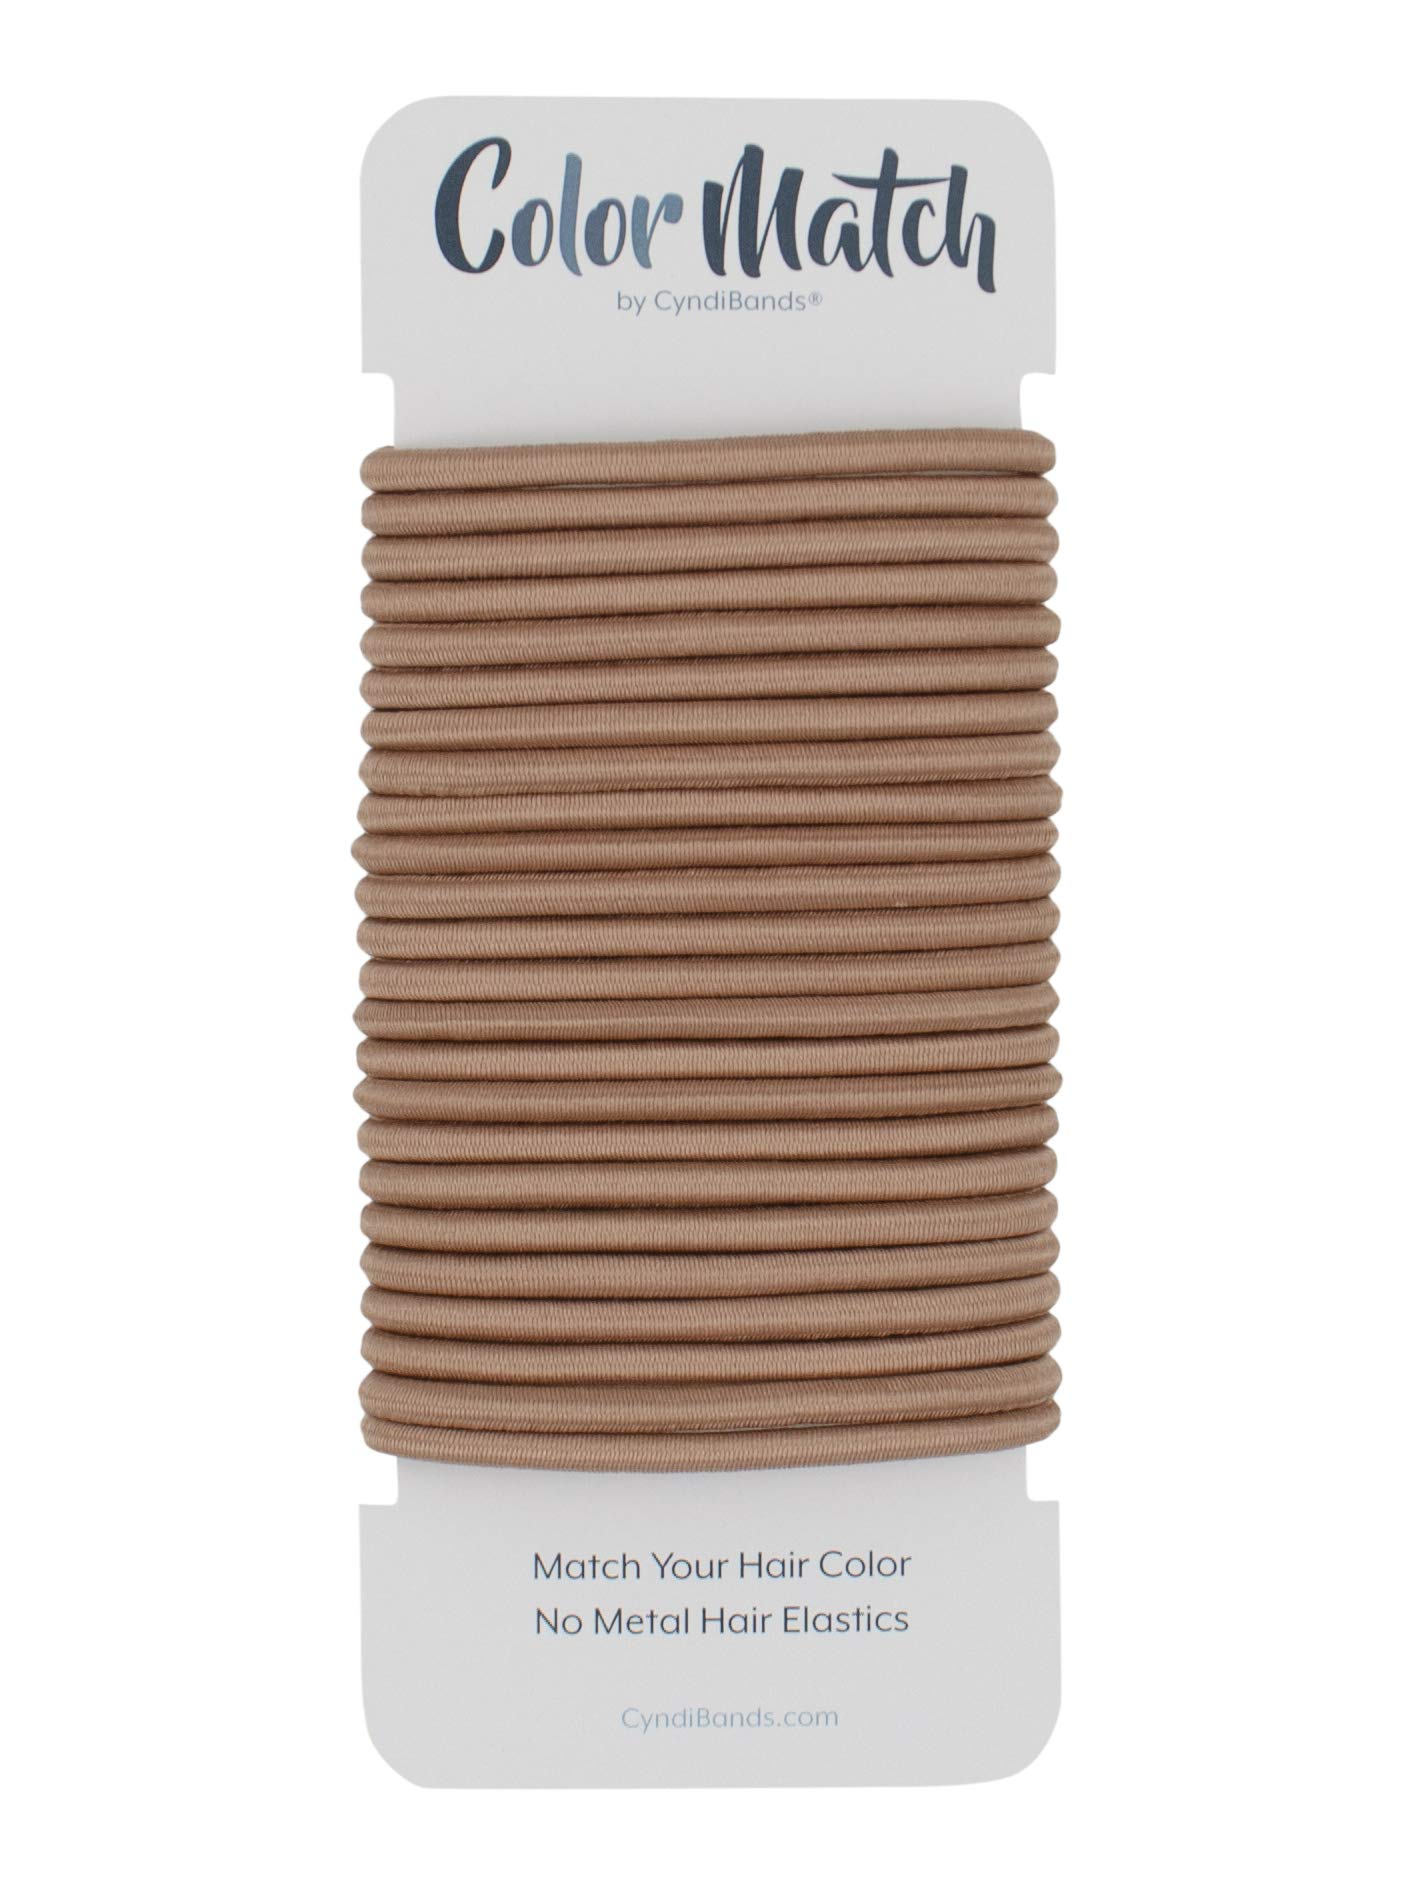 Rose Gold Brown No-Metal 4mm Elastic Hair Ties Color Match Ponytail Holders - 24 Count